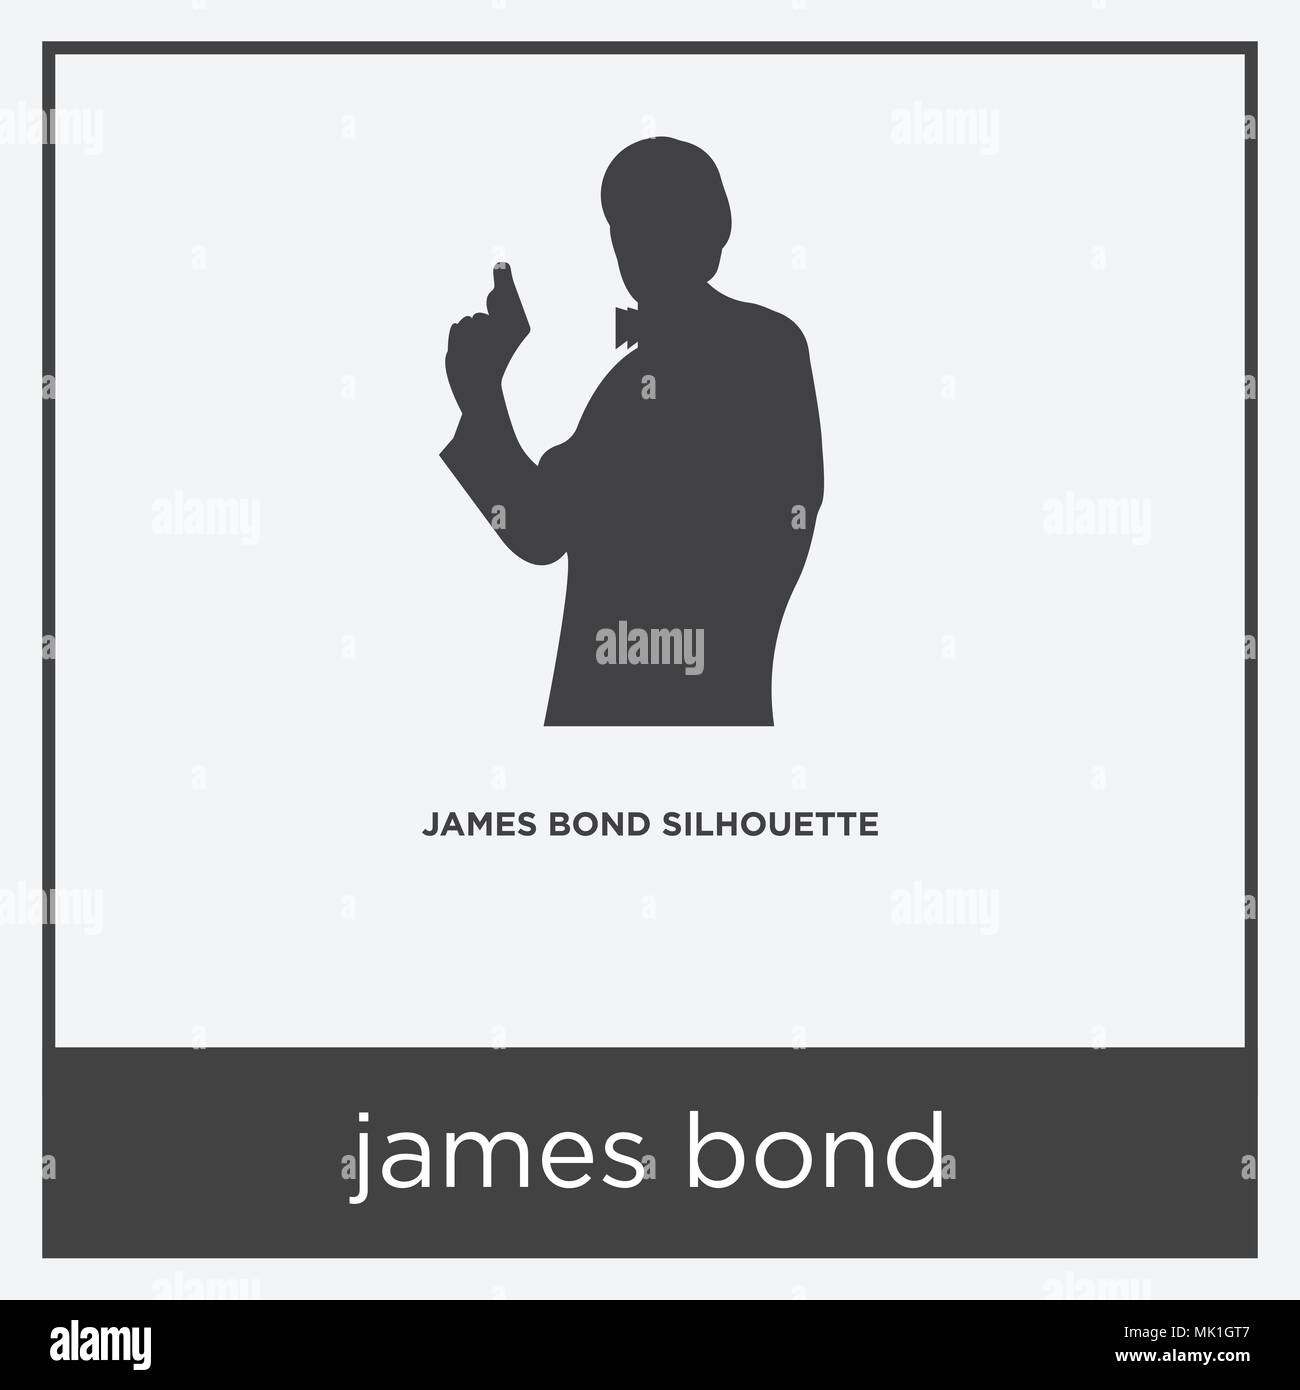 james bond icon isolated on white background with gray frame, sign ...